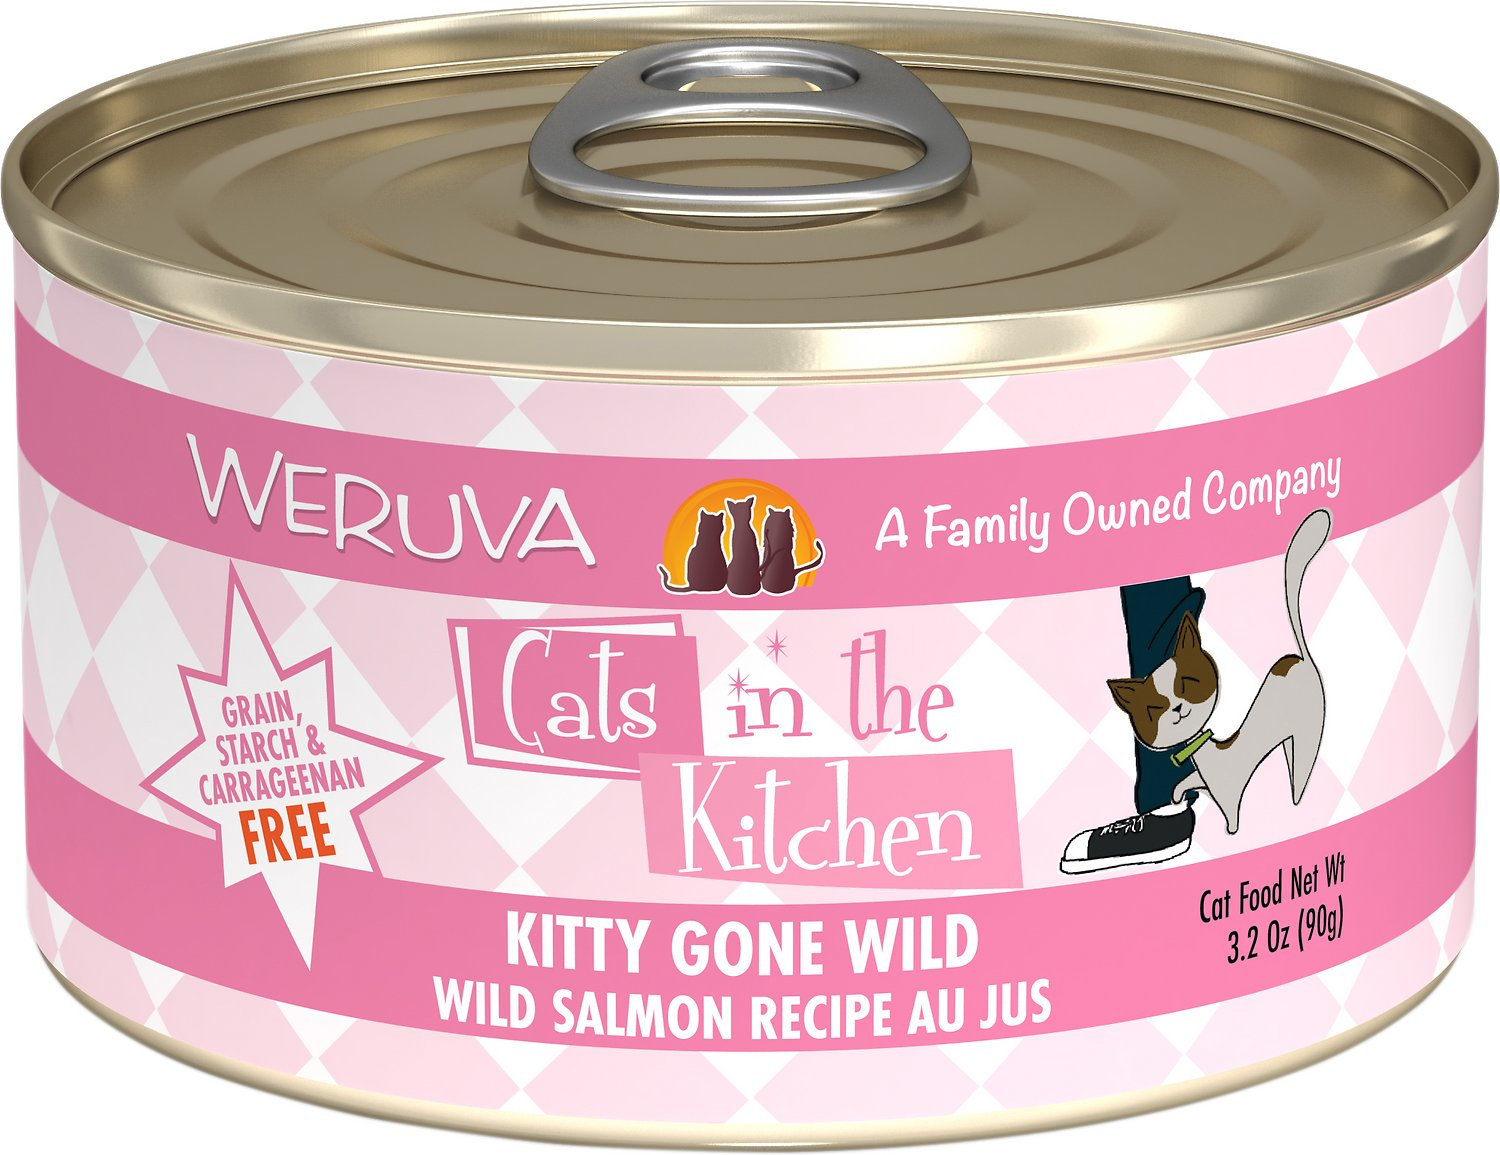 Weruva Cats in the Kitchen Kitty Gone Wild Salmon Au Jus Grain-Free Wet Cat Food Image